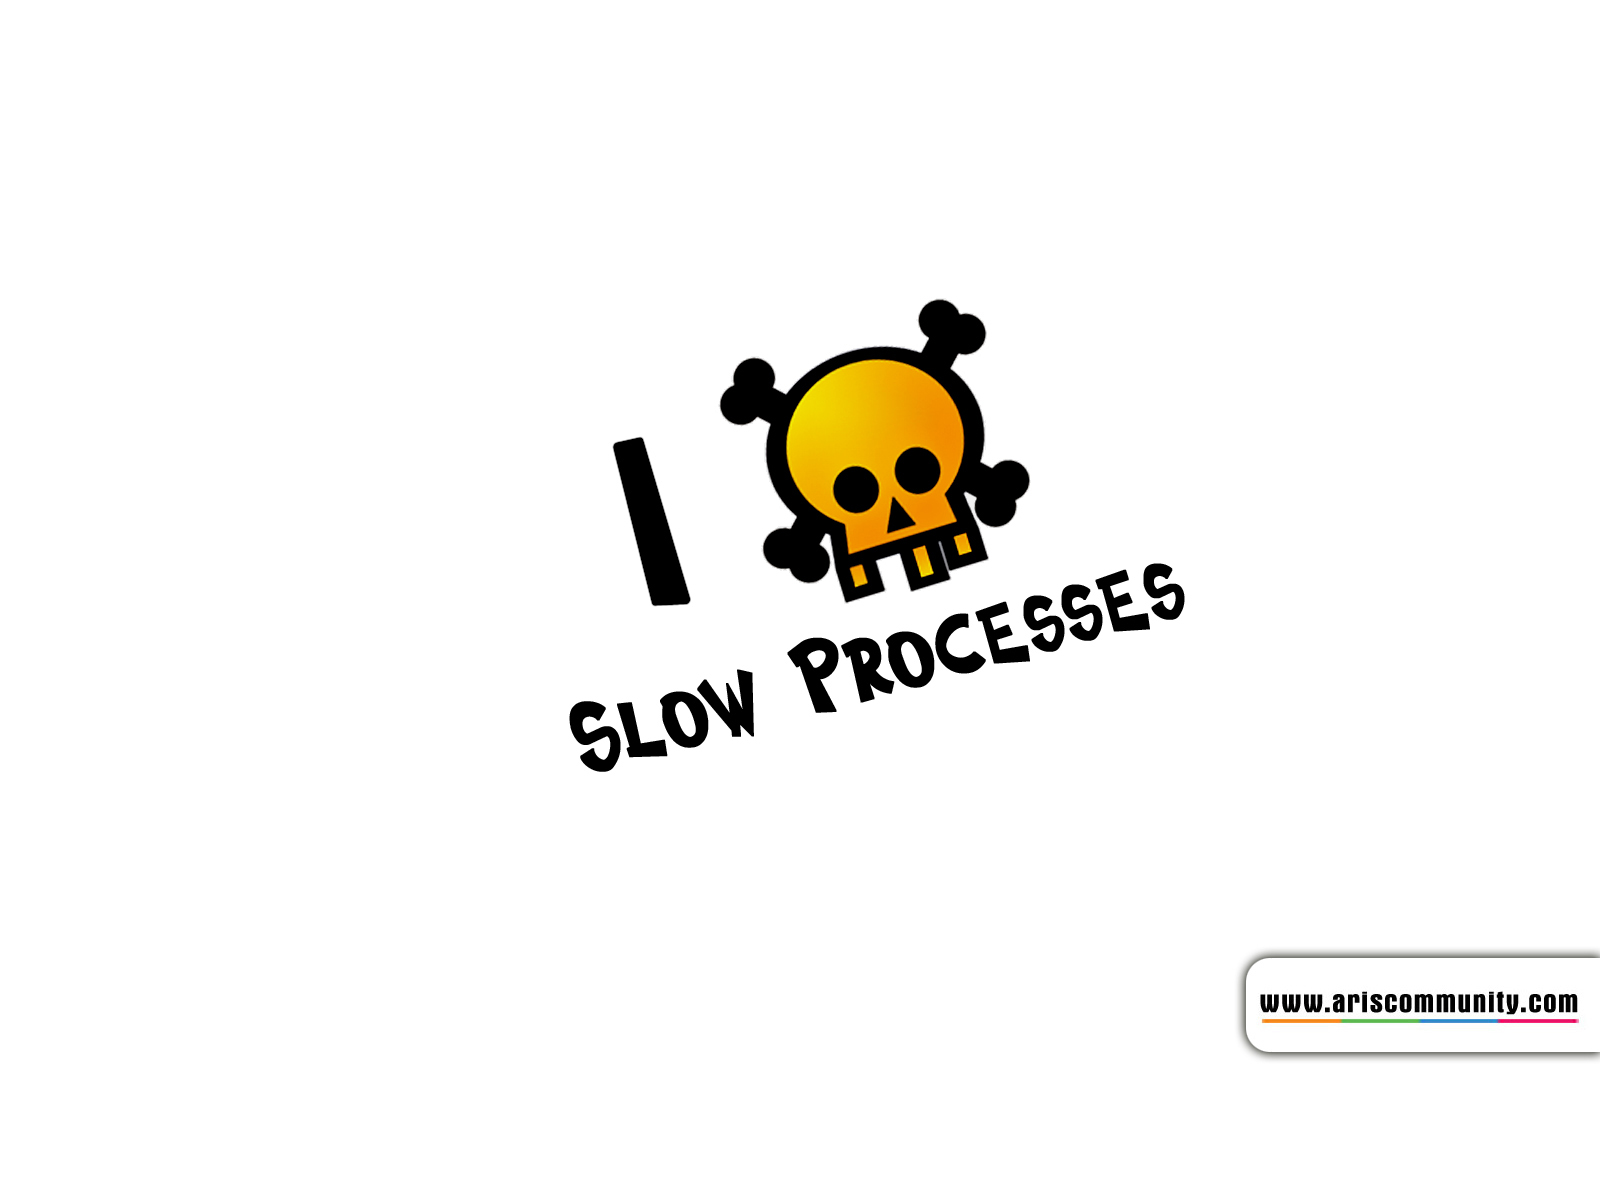 For all Slow Process Haters... New wallpaper availabele